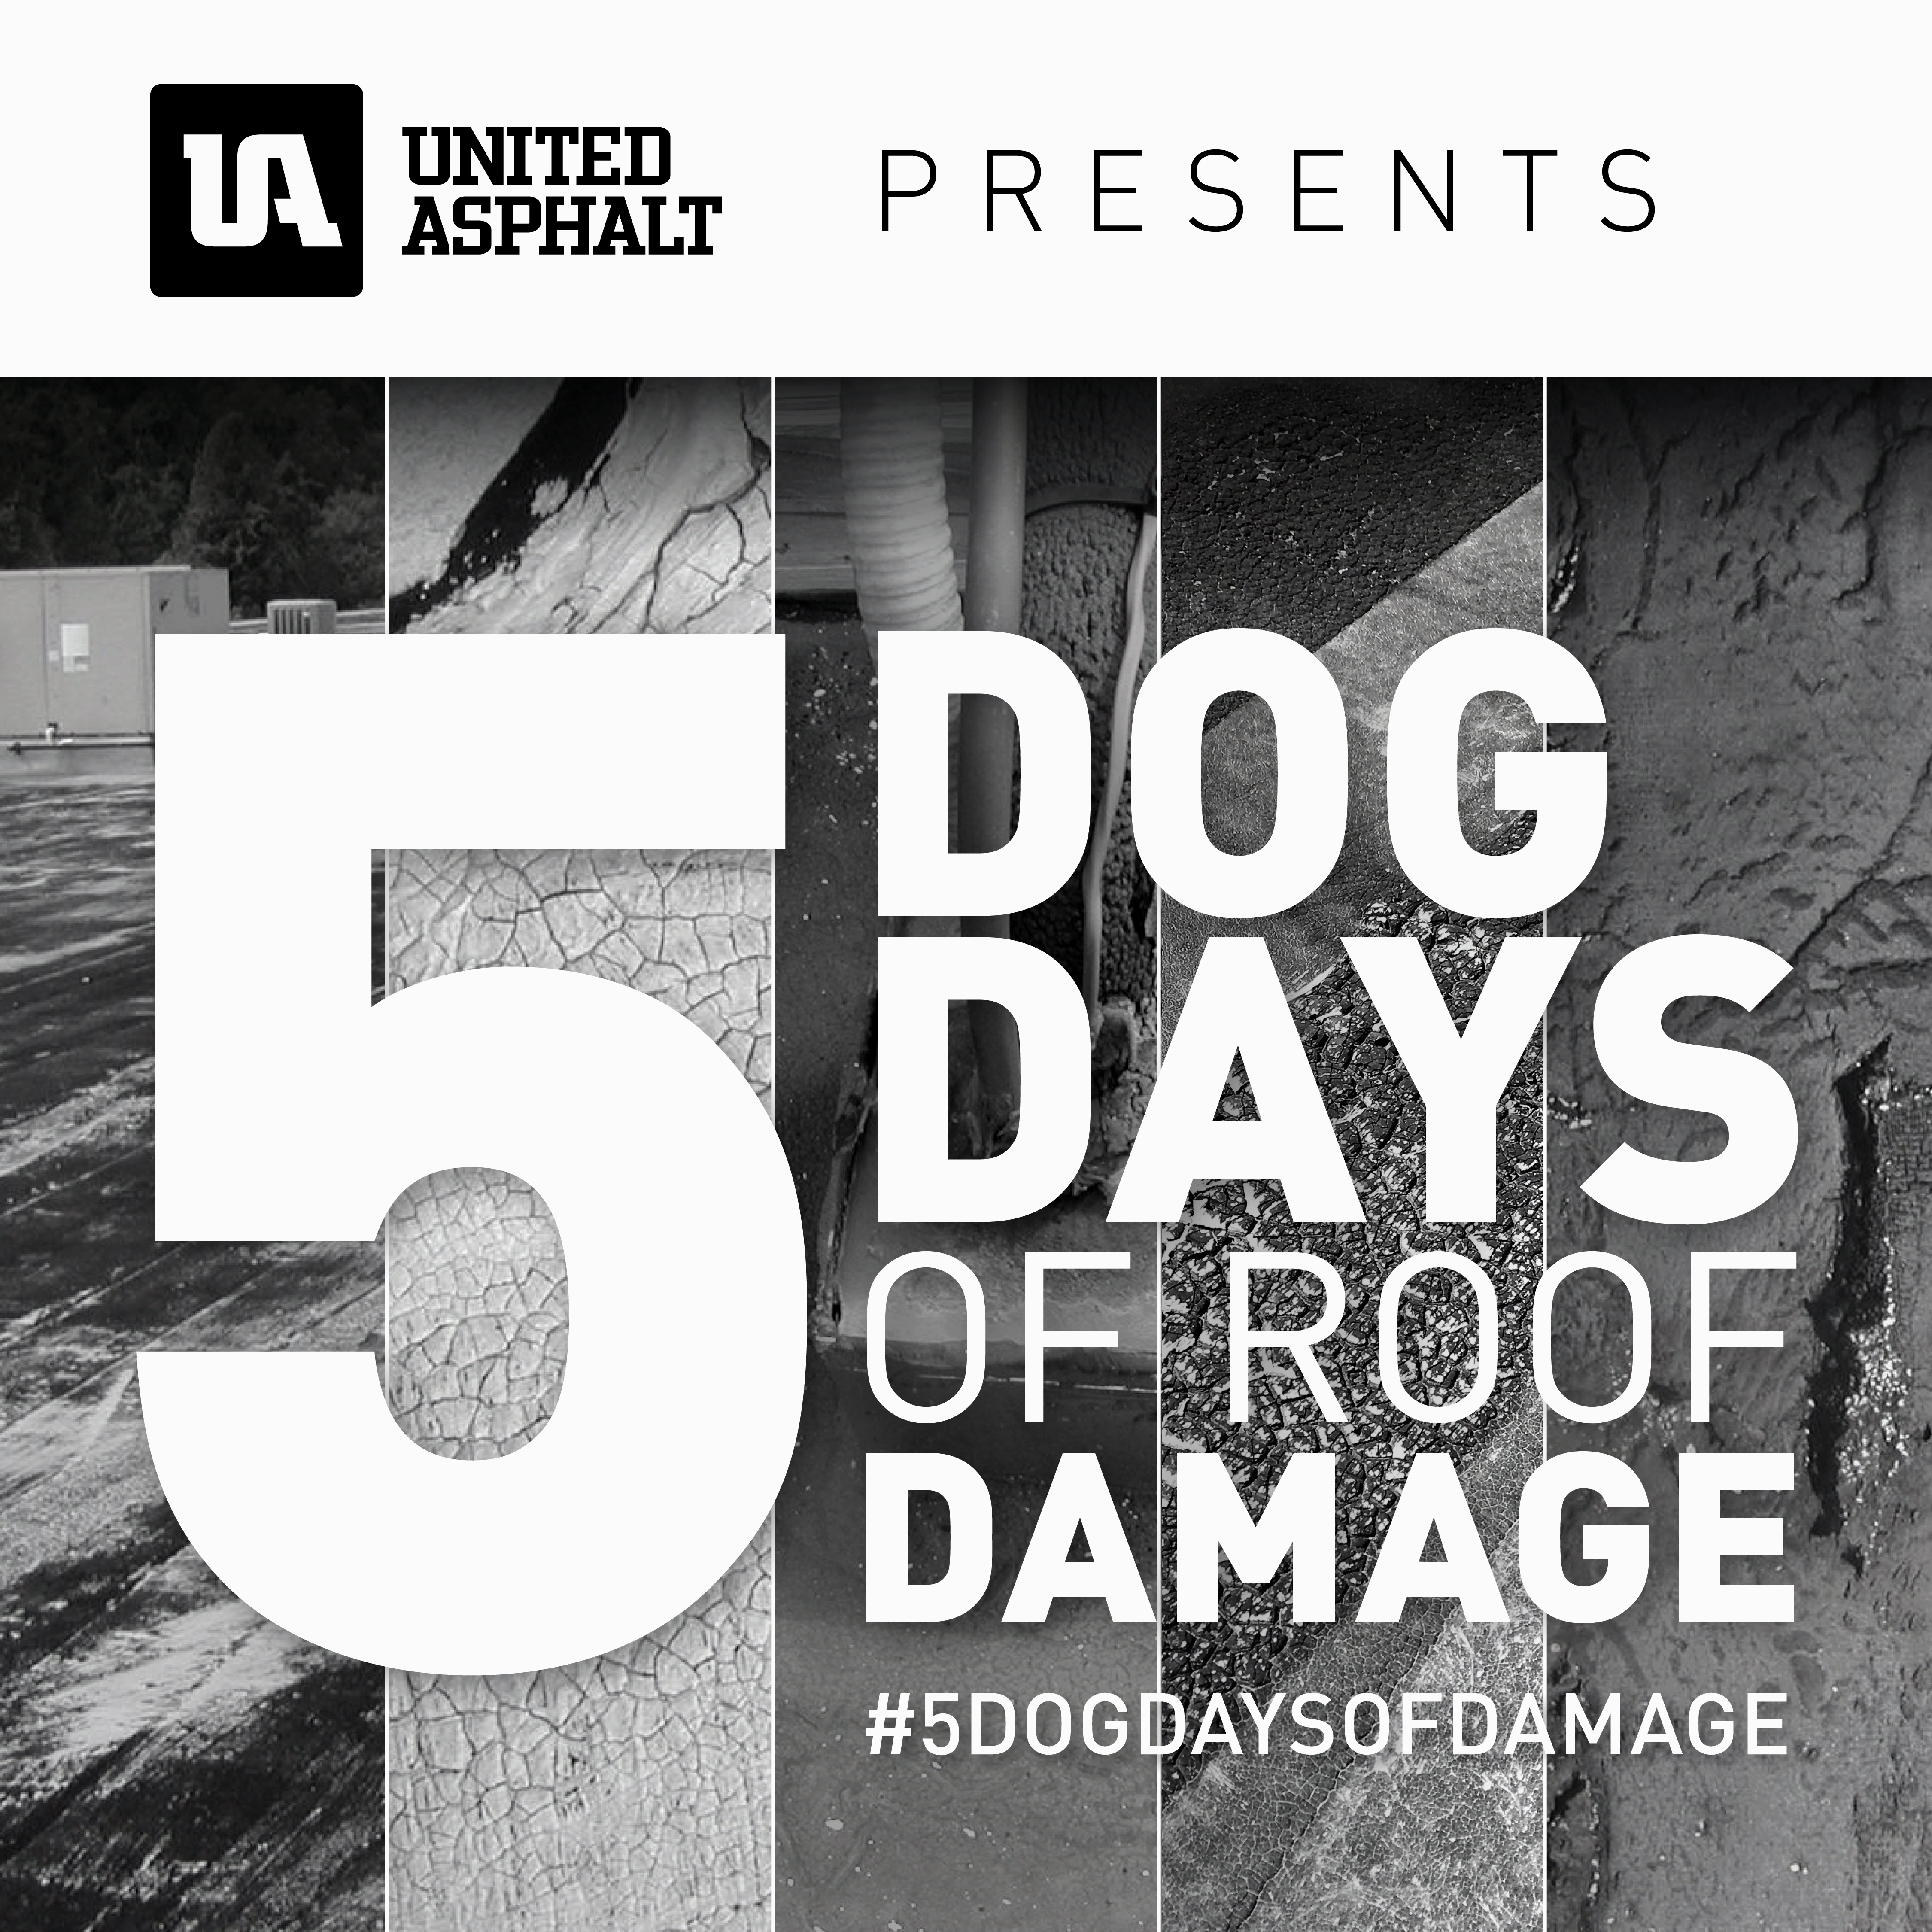 5 Dog Days of Roof Damage 1st Day Post